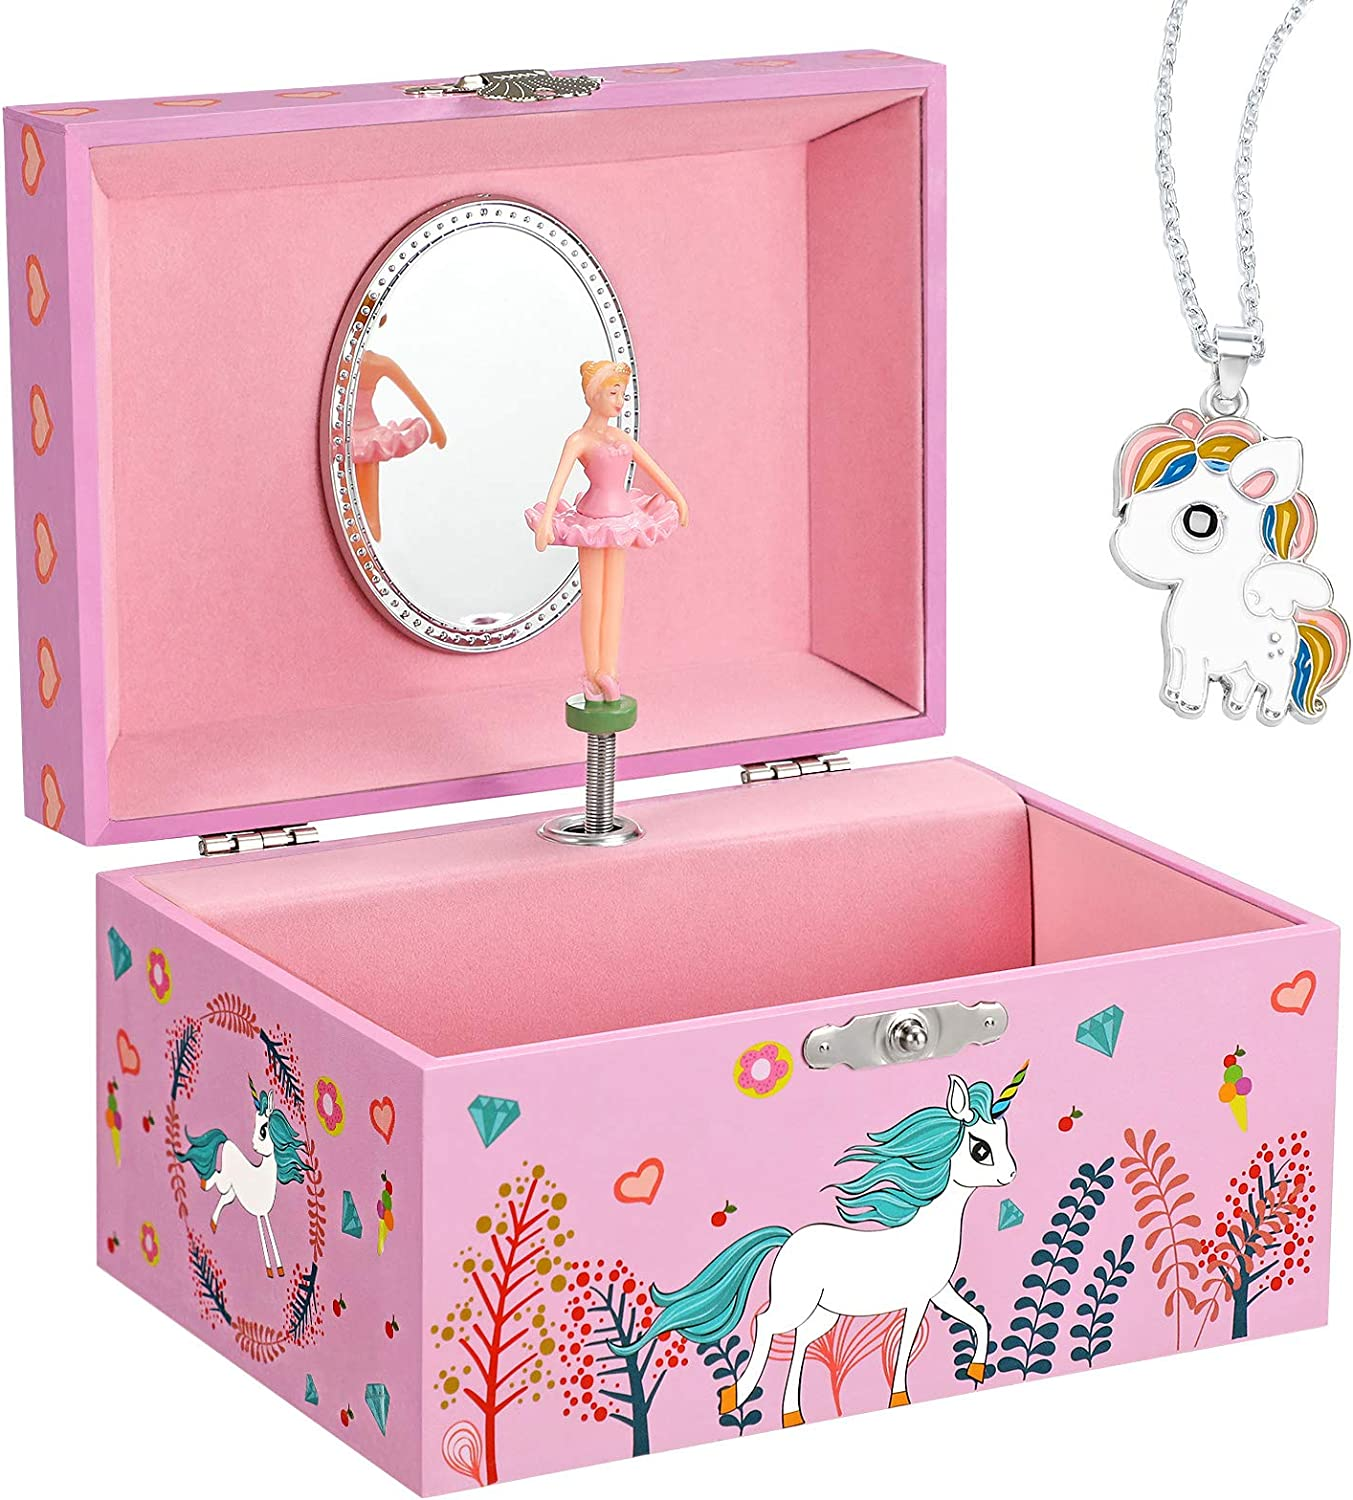 SONGMICS Musical Jewelry Box for Kids with a Ballerina Inside, Motif, The Unicorn Melody, 5.8″L x 4.2″W x 3.3″H, Pink